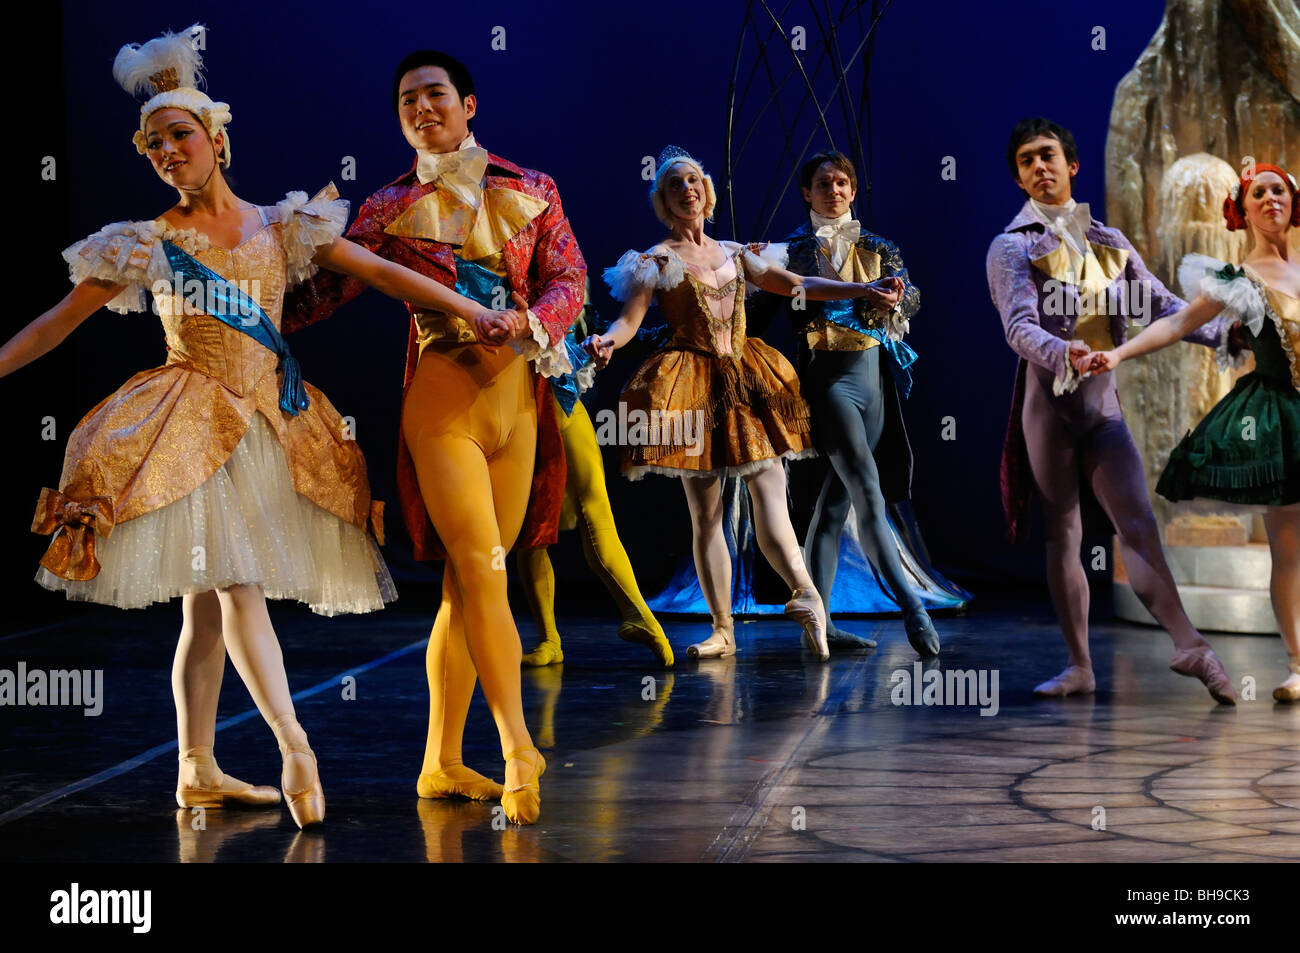 Stepsisters and Guests Ballroom dancing at Prince Charming palace in Ballet Jorgen production of Cinderella - Stock Image